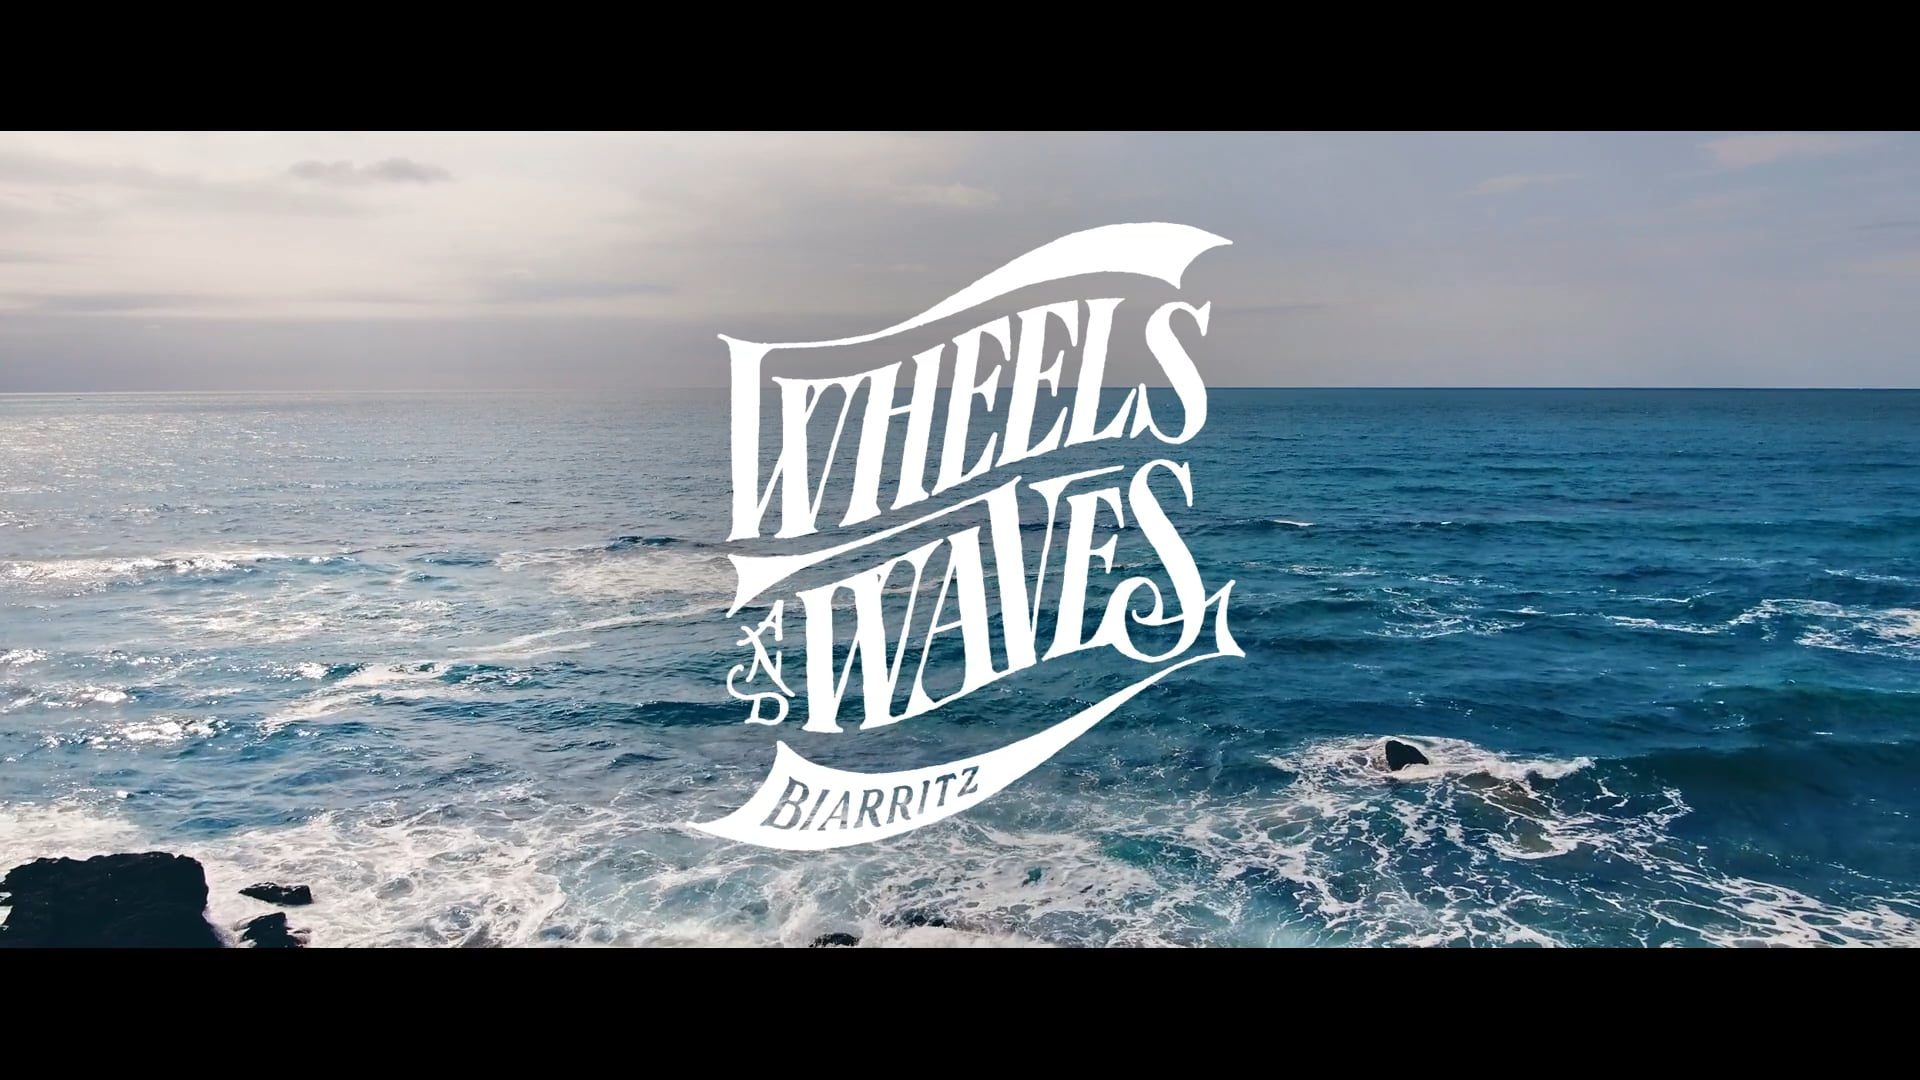 Our passion. Our adventures. Wheels & Waves.